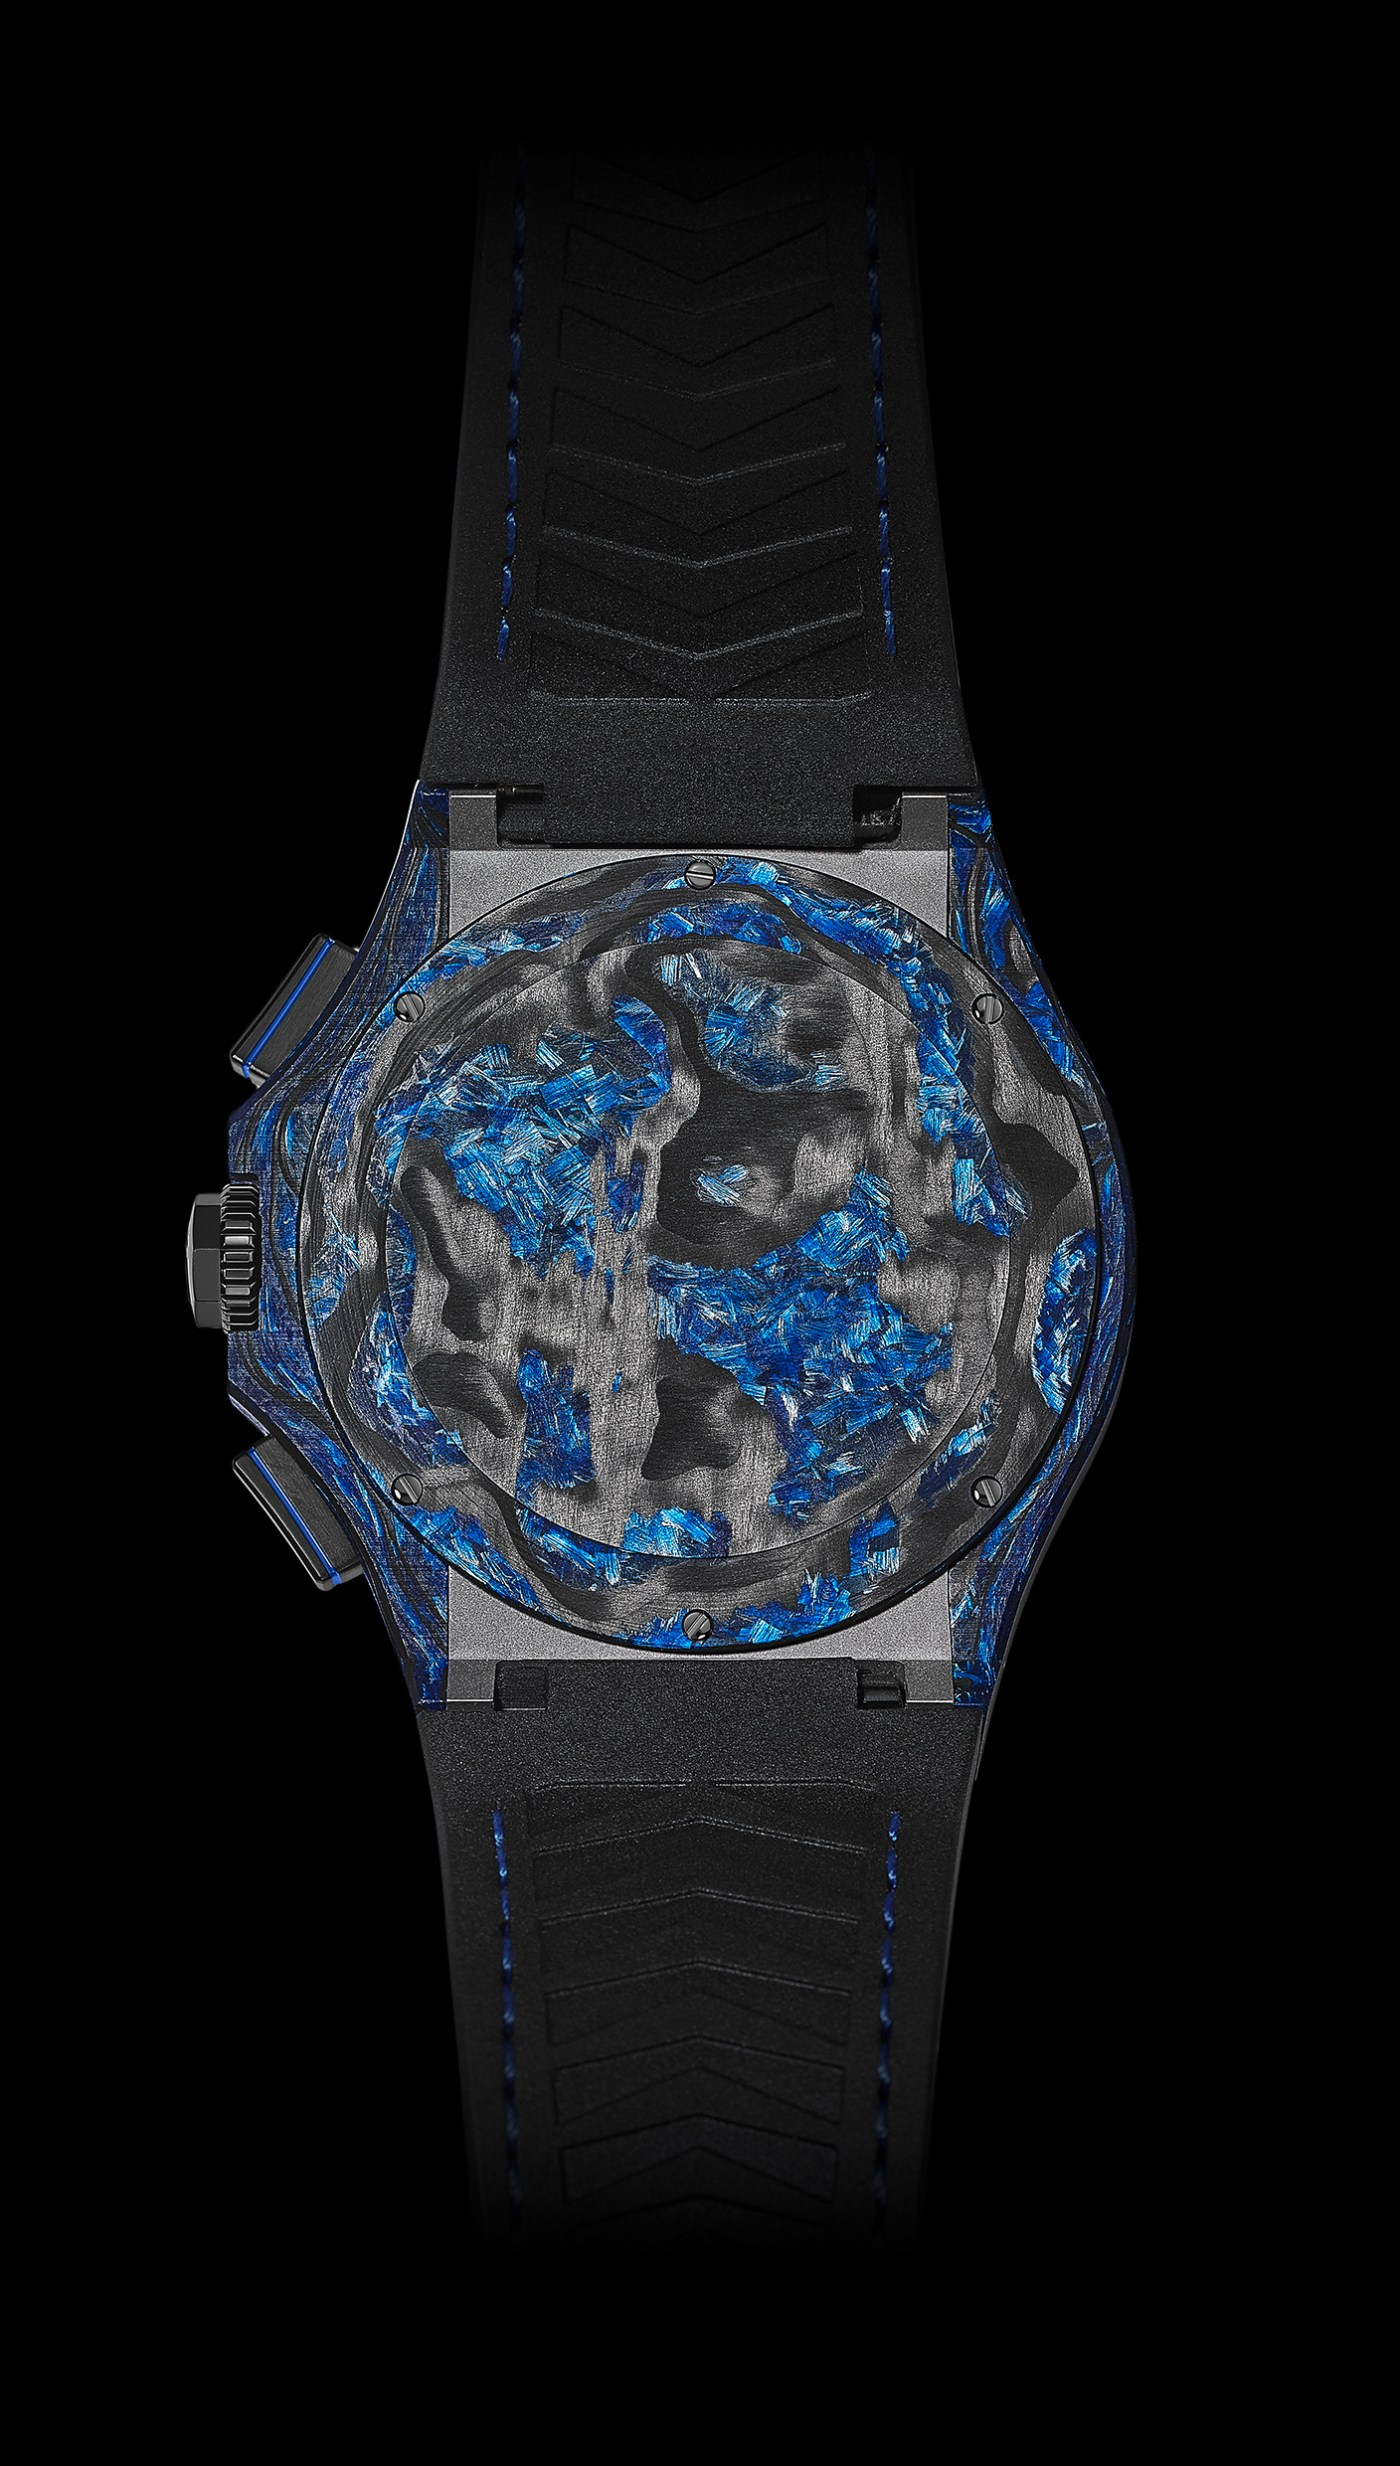 Girard-Perregaux Carbon Glass Concept Watch caseback